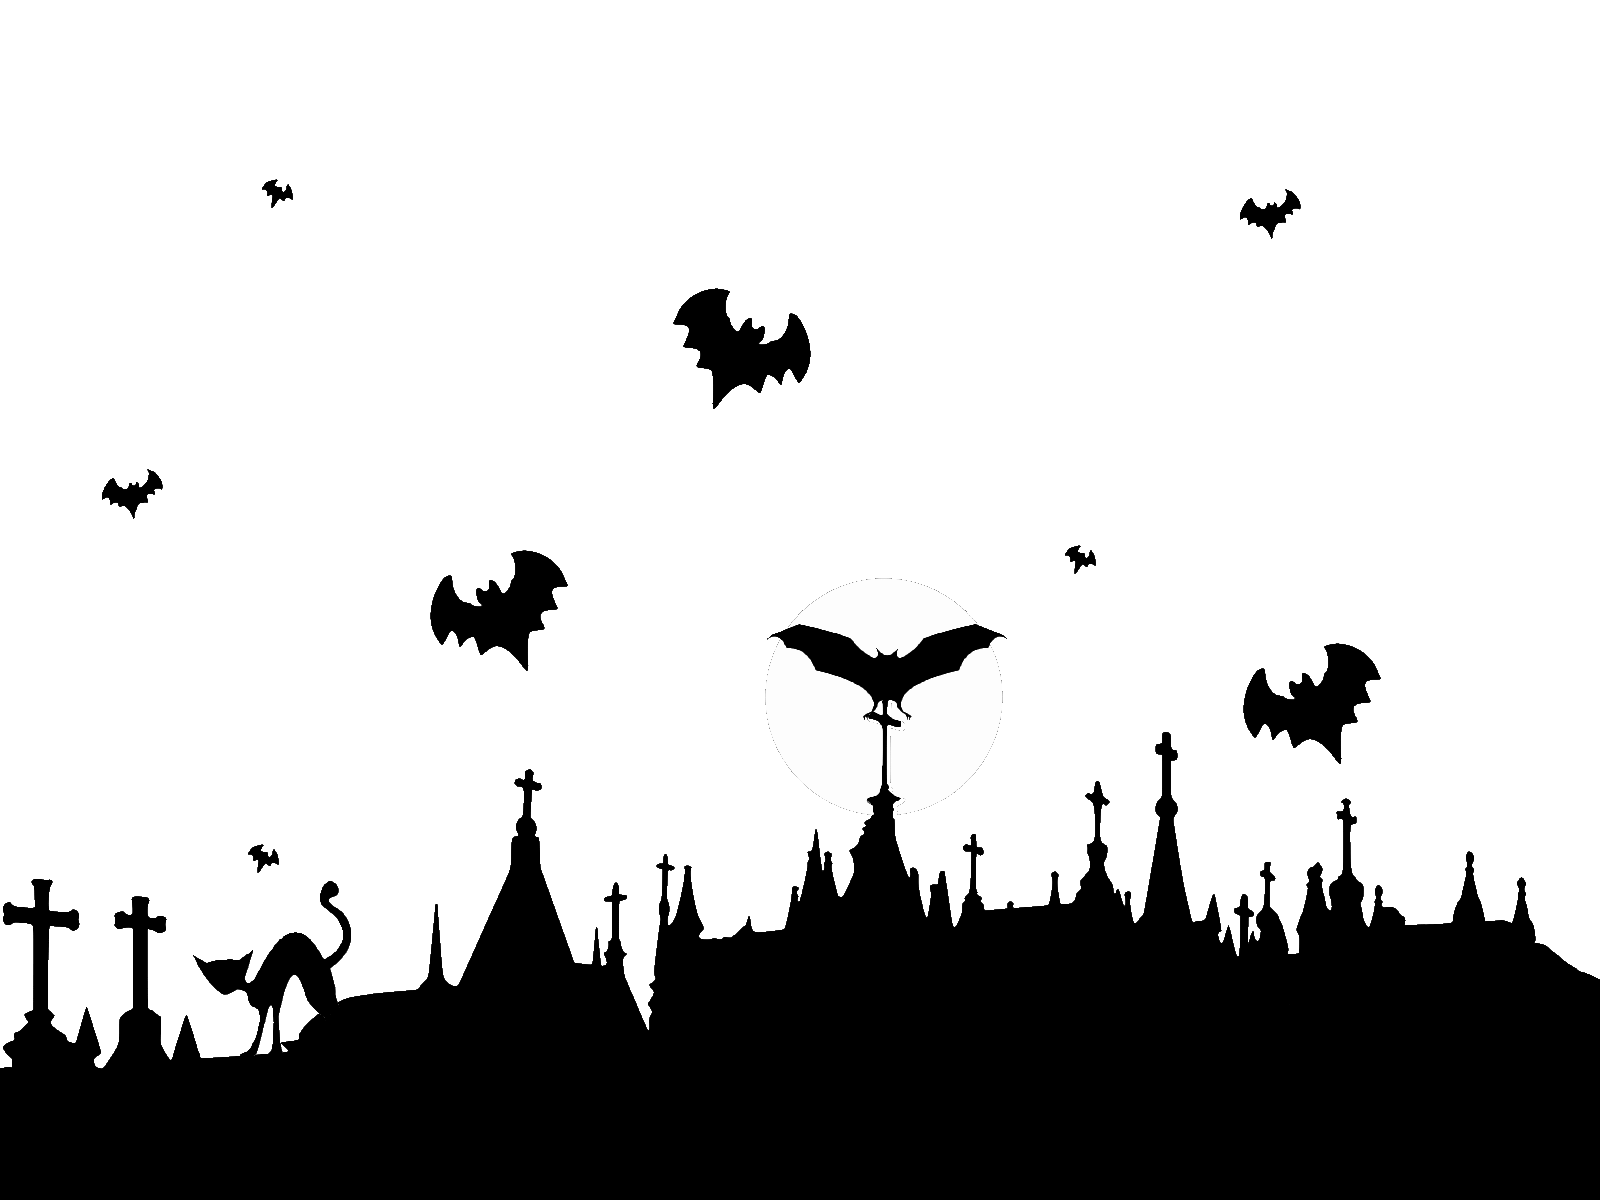 clipart transparent stock Graveyard and flying bats. Cemetery clipart background